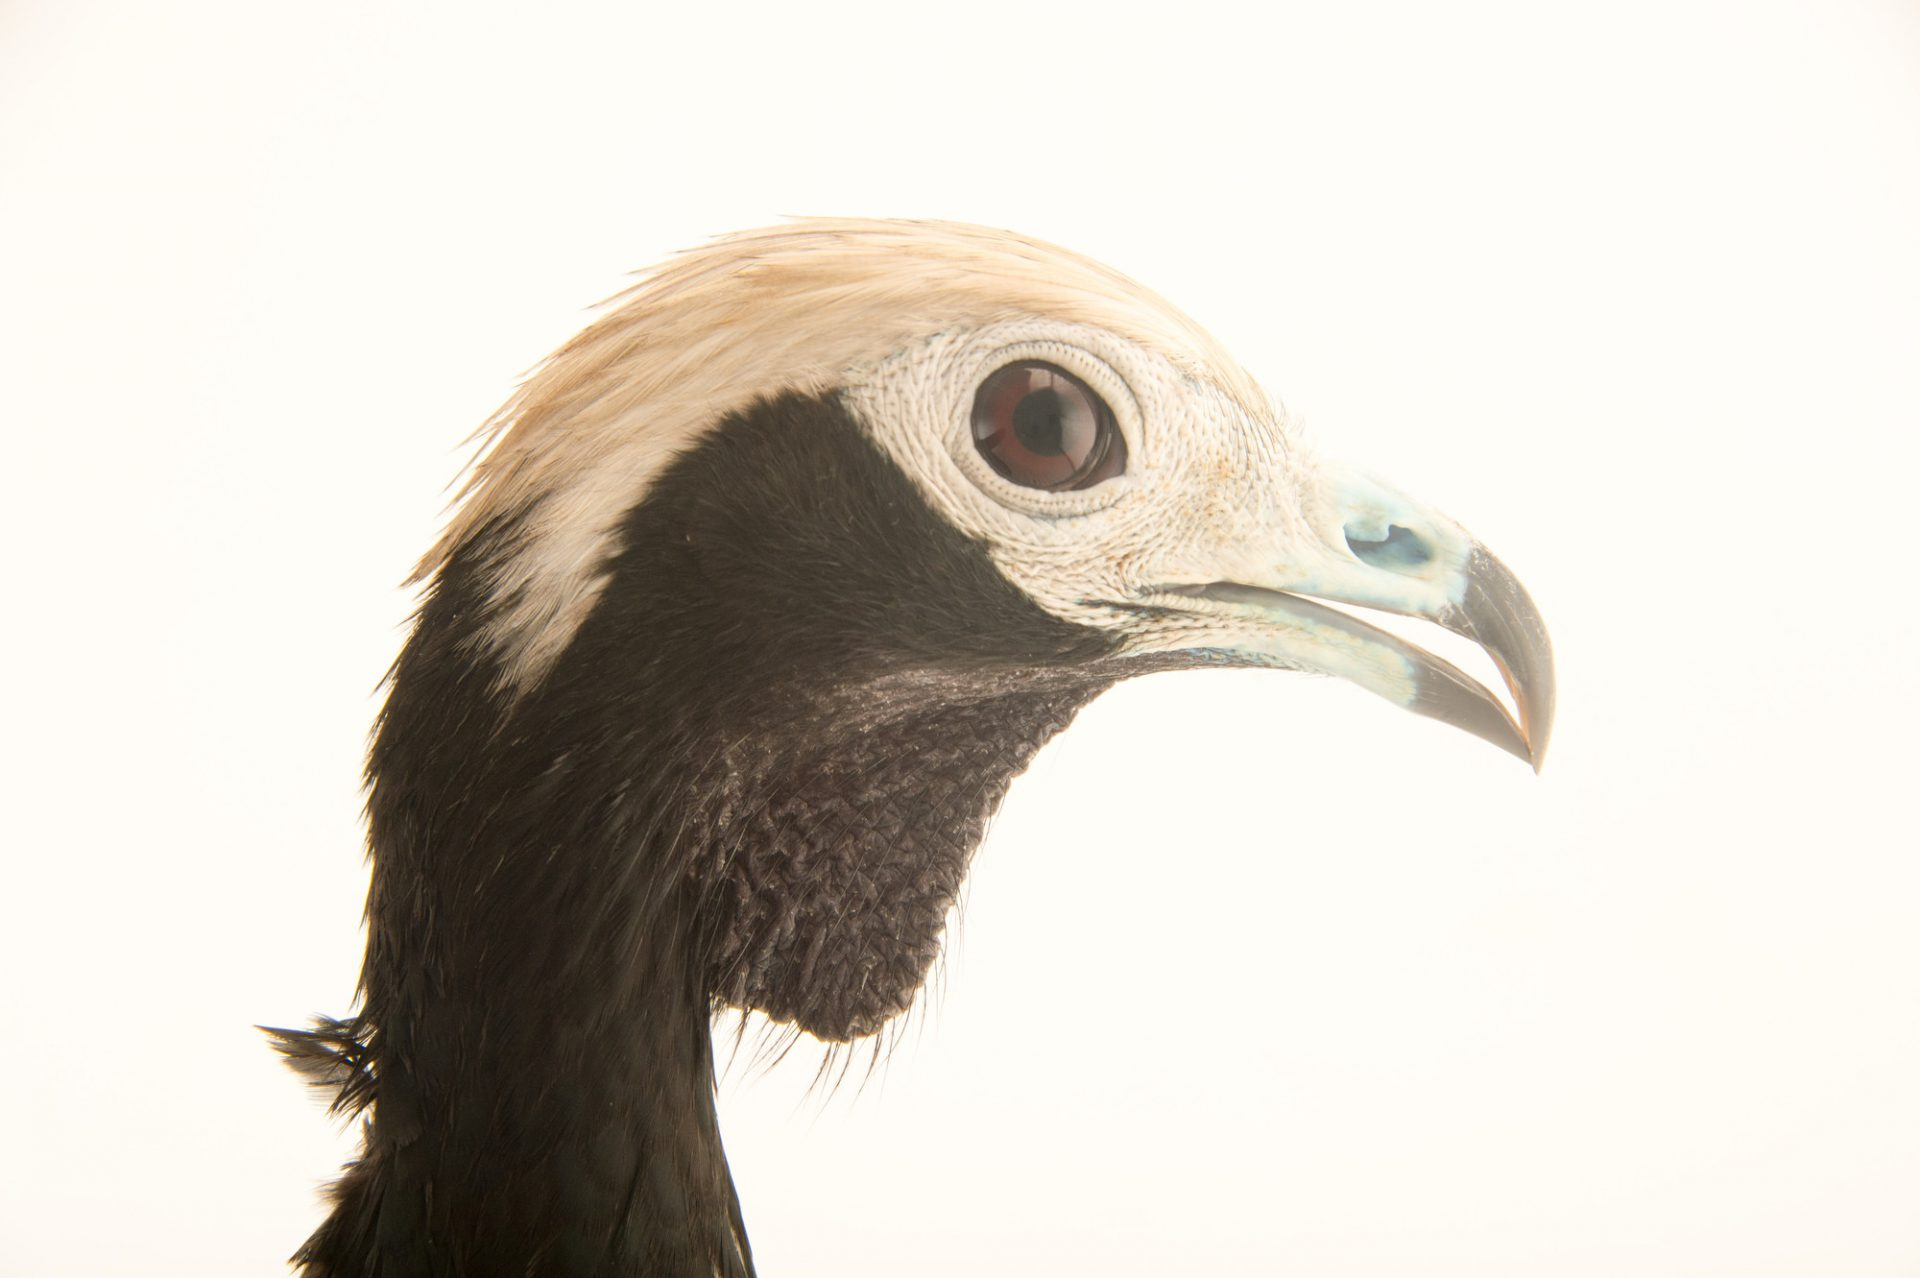 Picture of a vulnerable blue-throated piping guan (Pipile cumanensis) at the National Aviary breeding center.